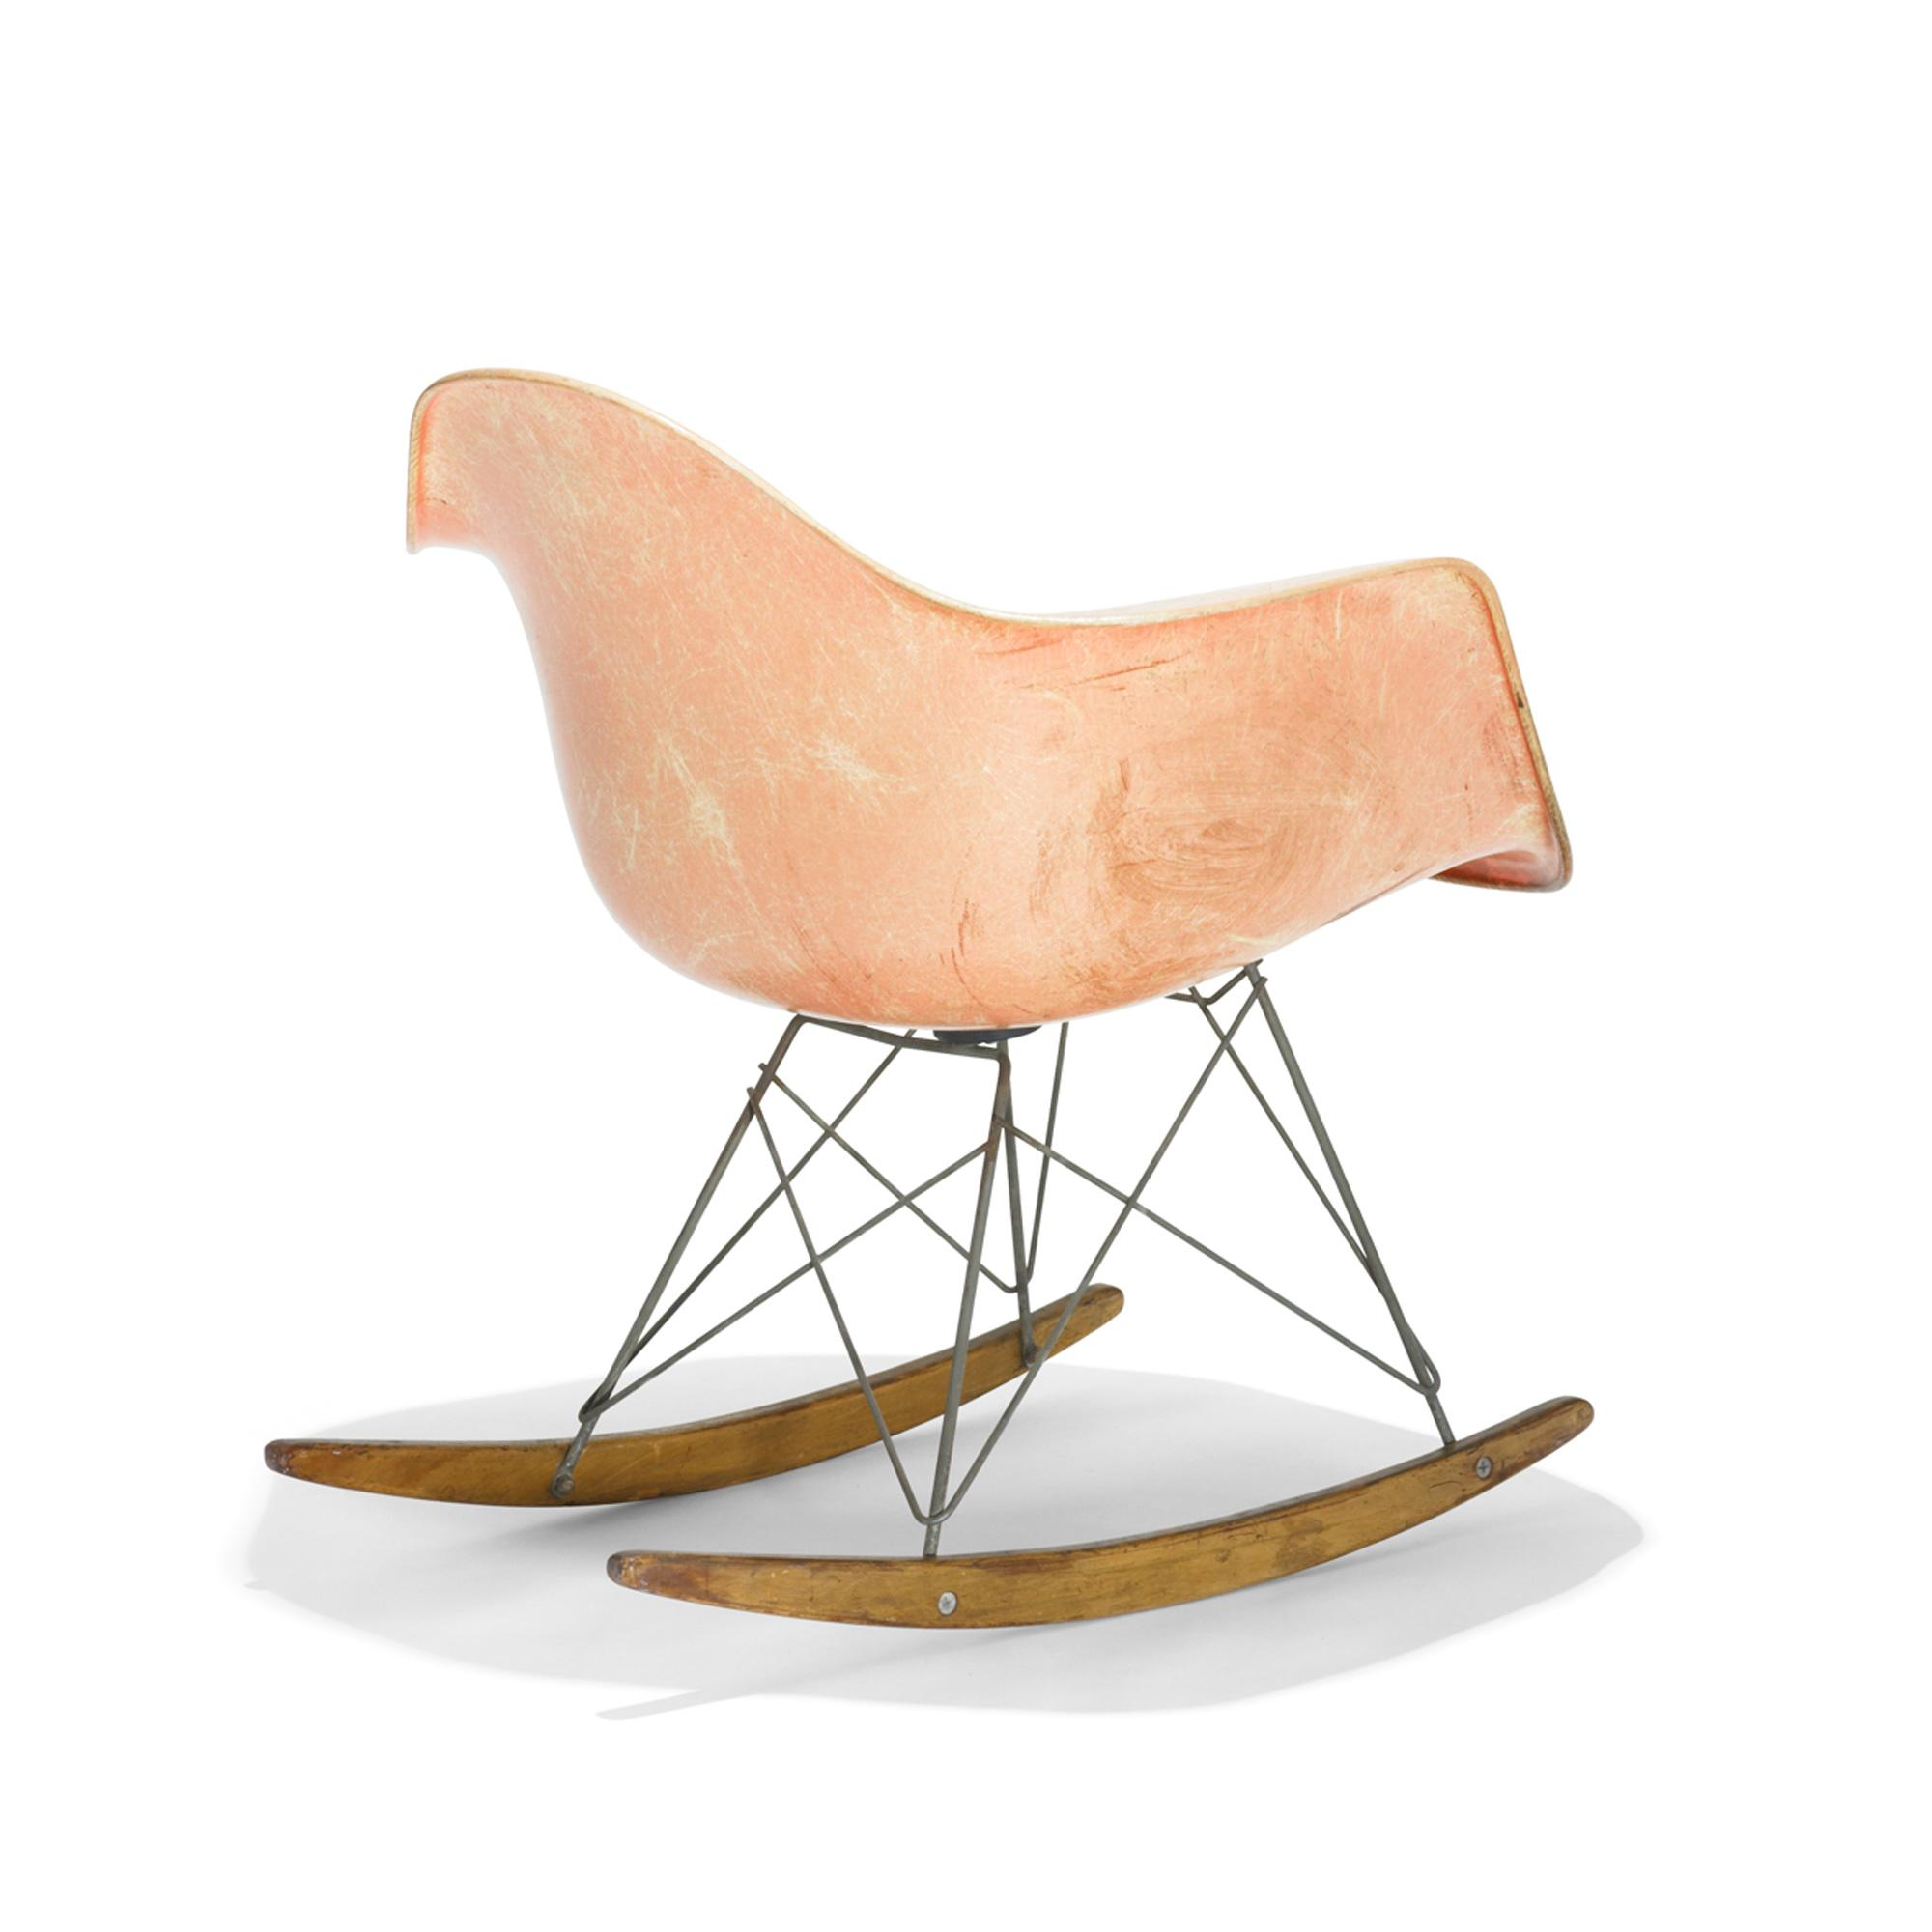 Charles and ray eames rar for Chaises rar charles eames